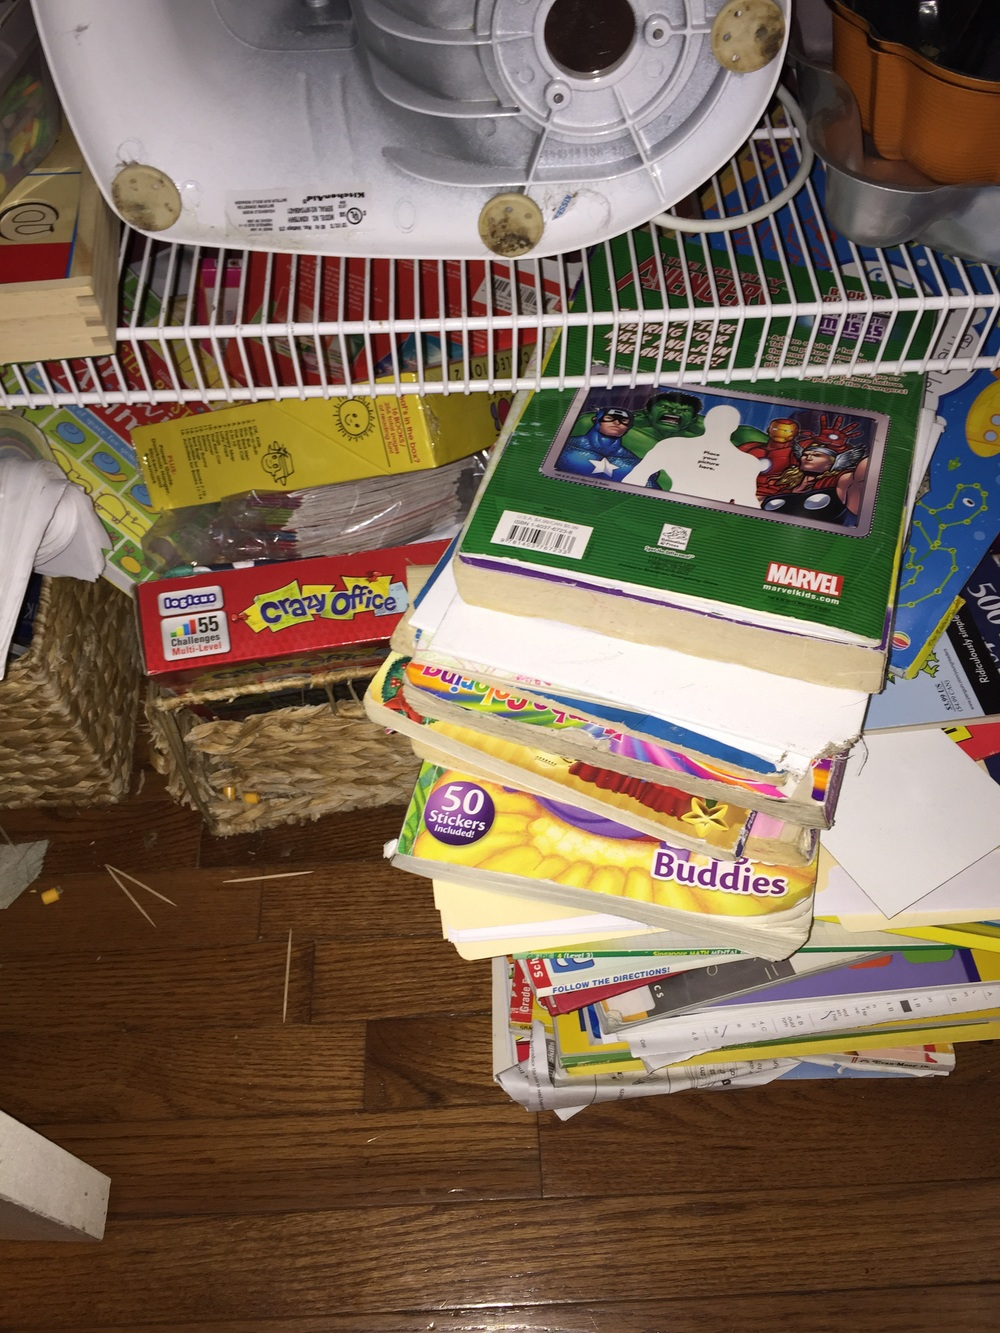 An online curriculum means less stuff!  These are our overflowing homeschool baskets from last year.